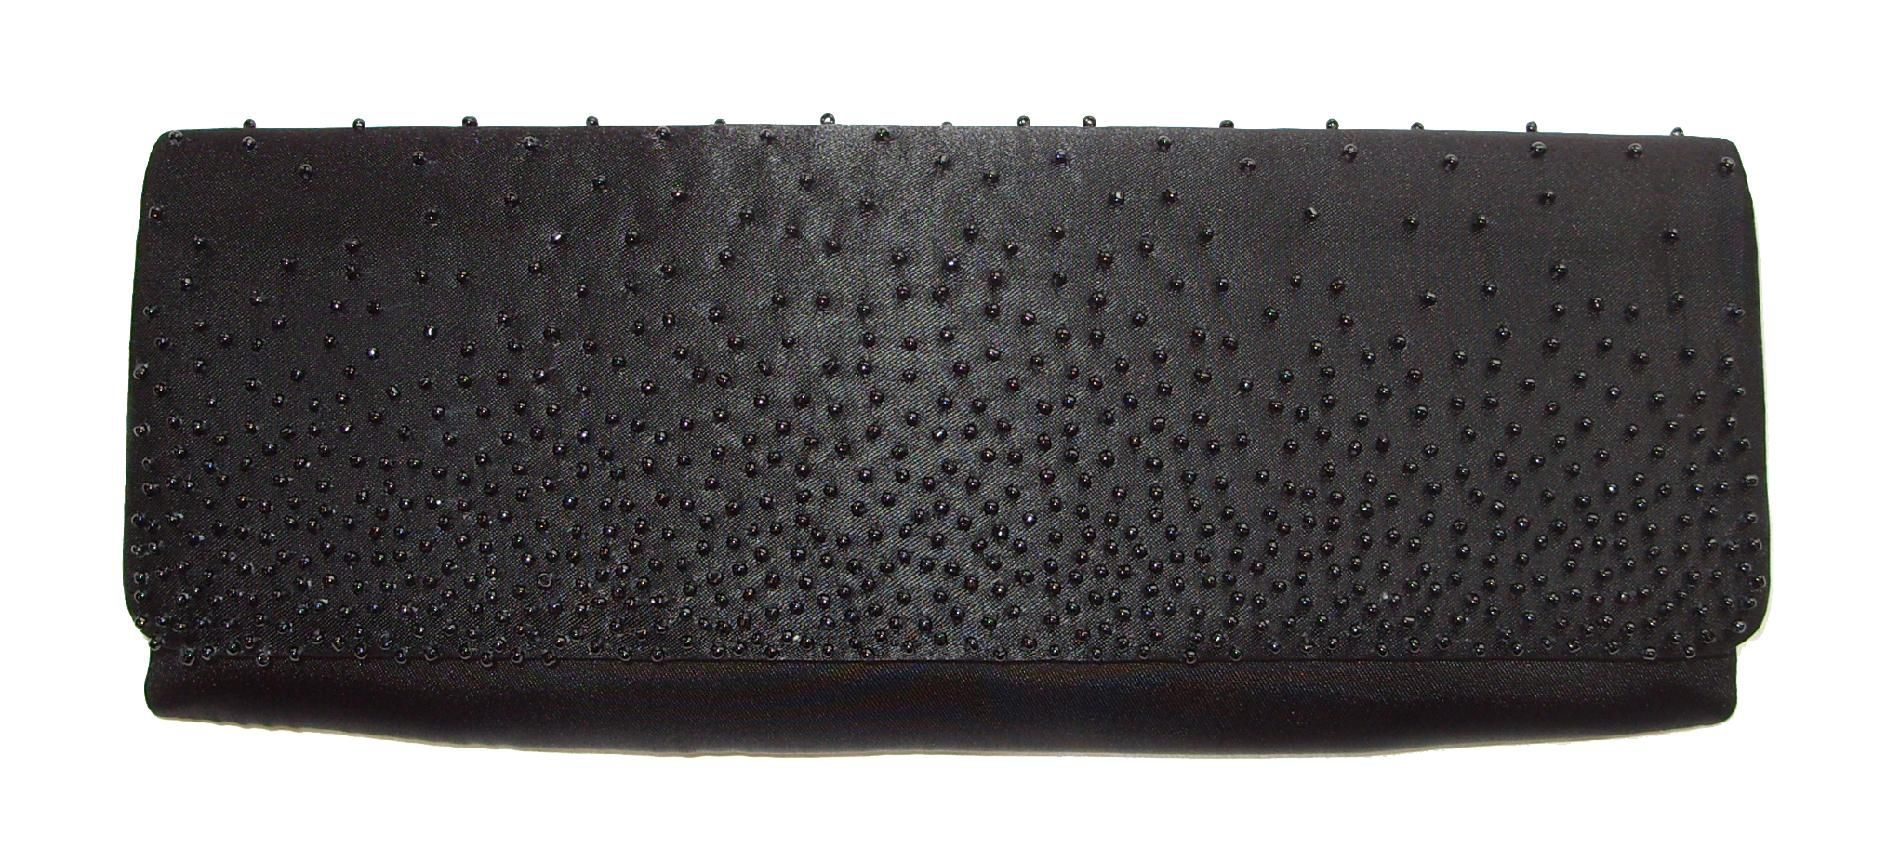 Women's Clutch Handbag Beaded